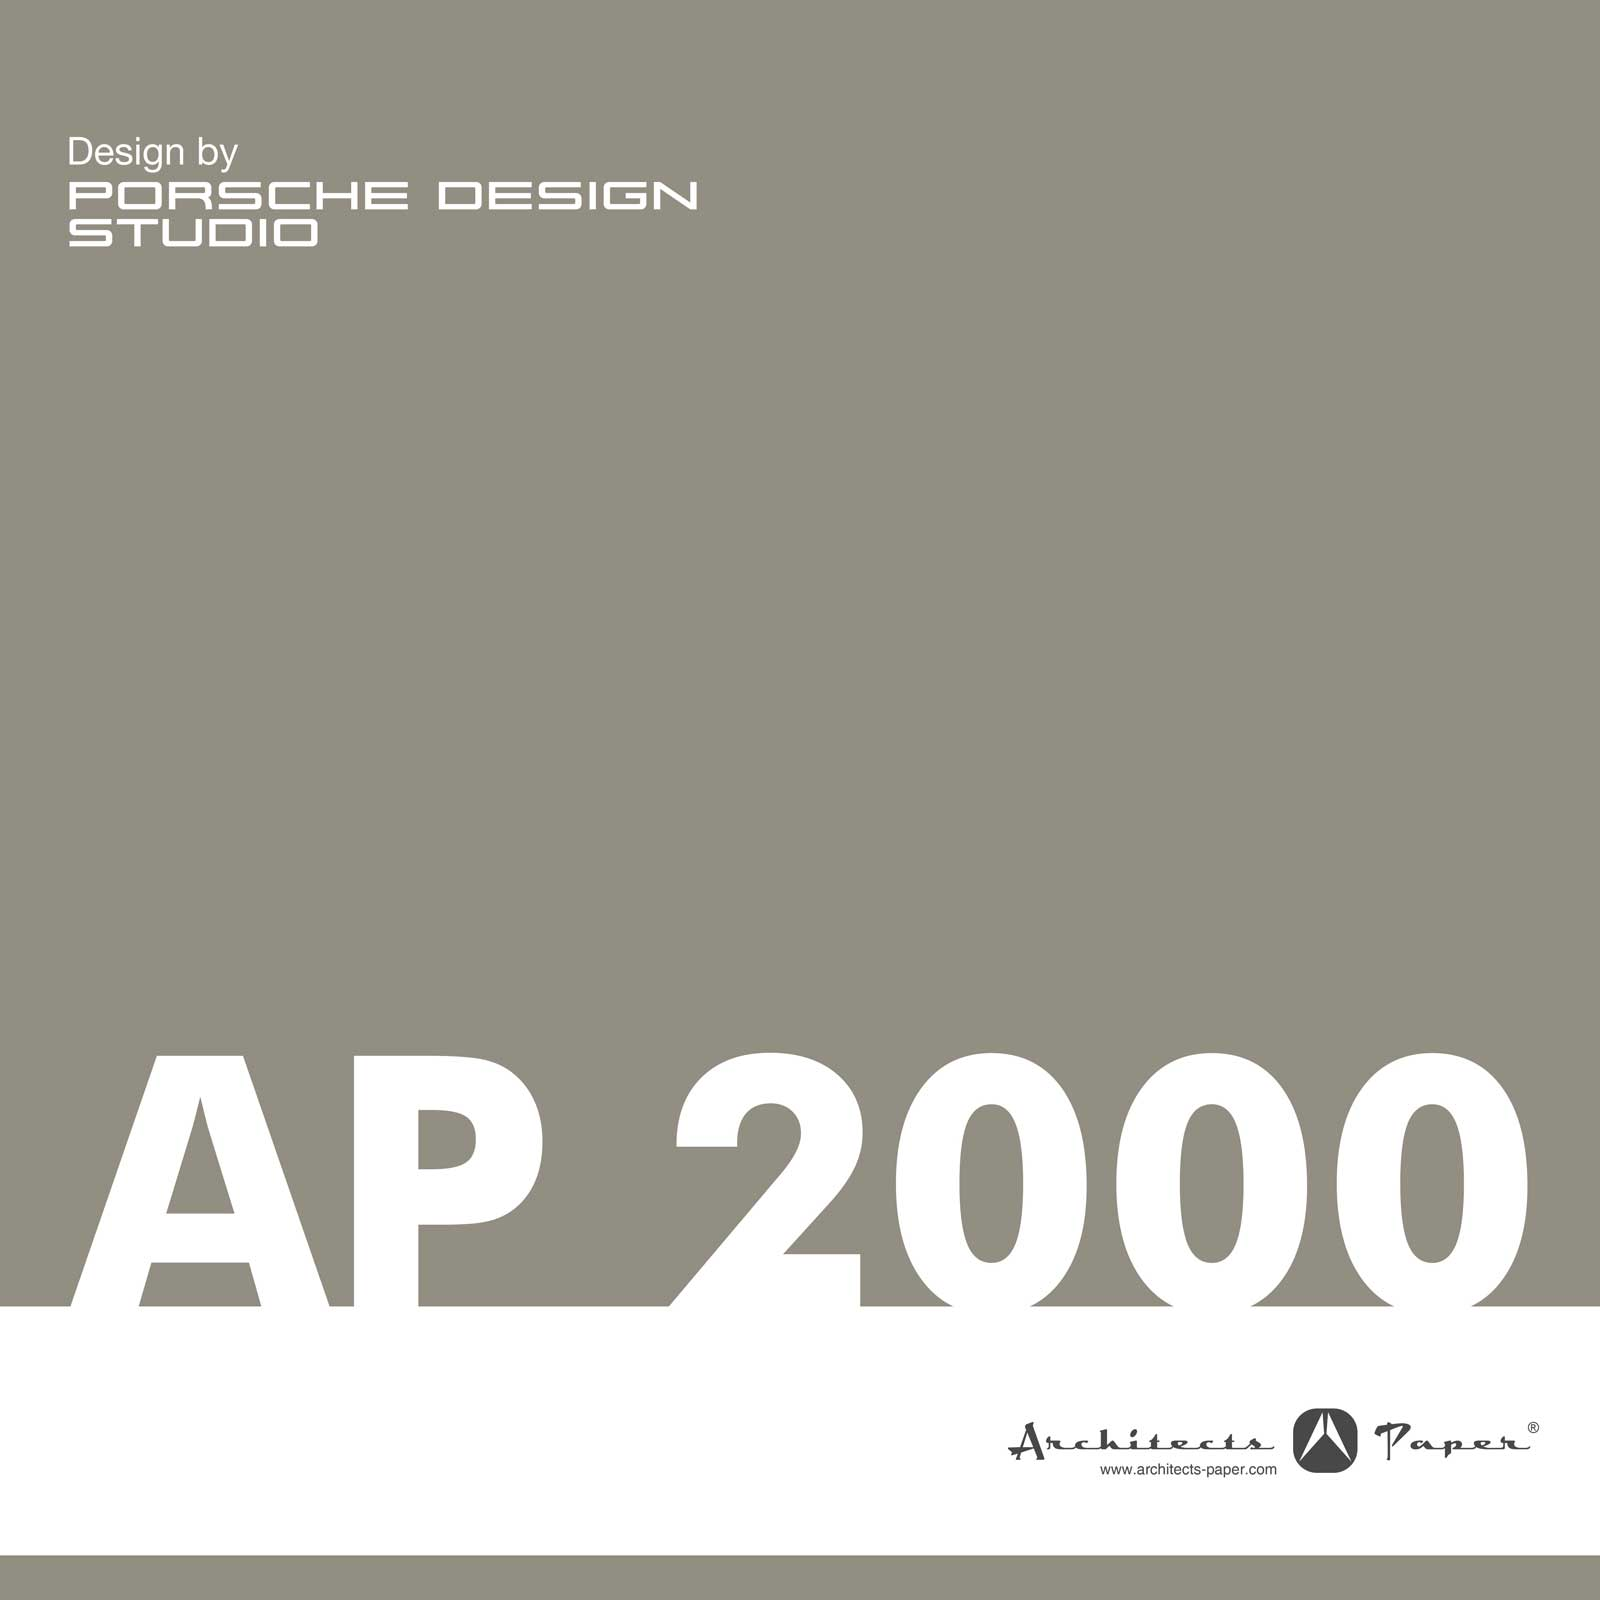 Architects Paper AP 2000